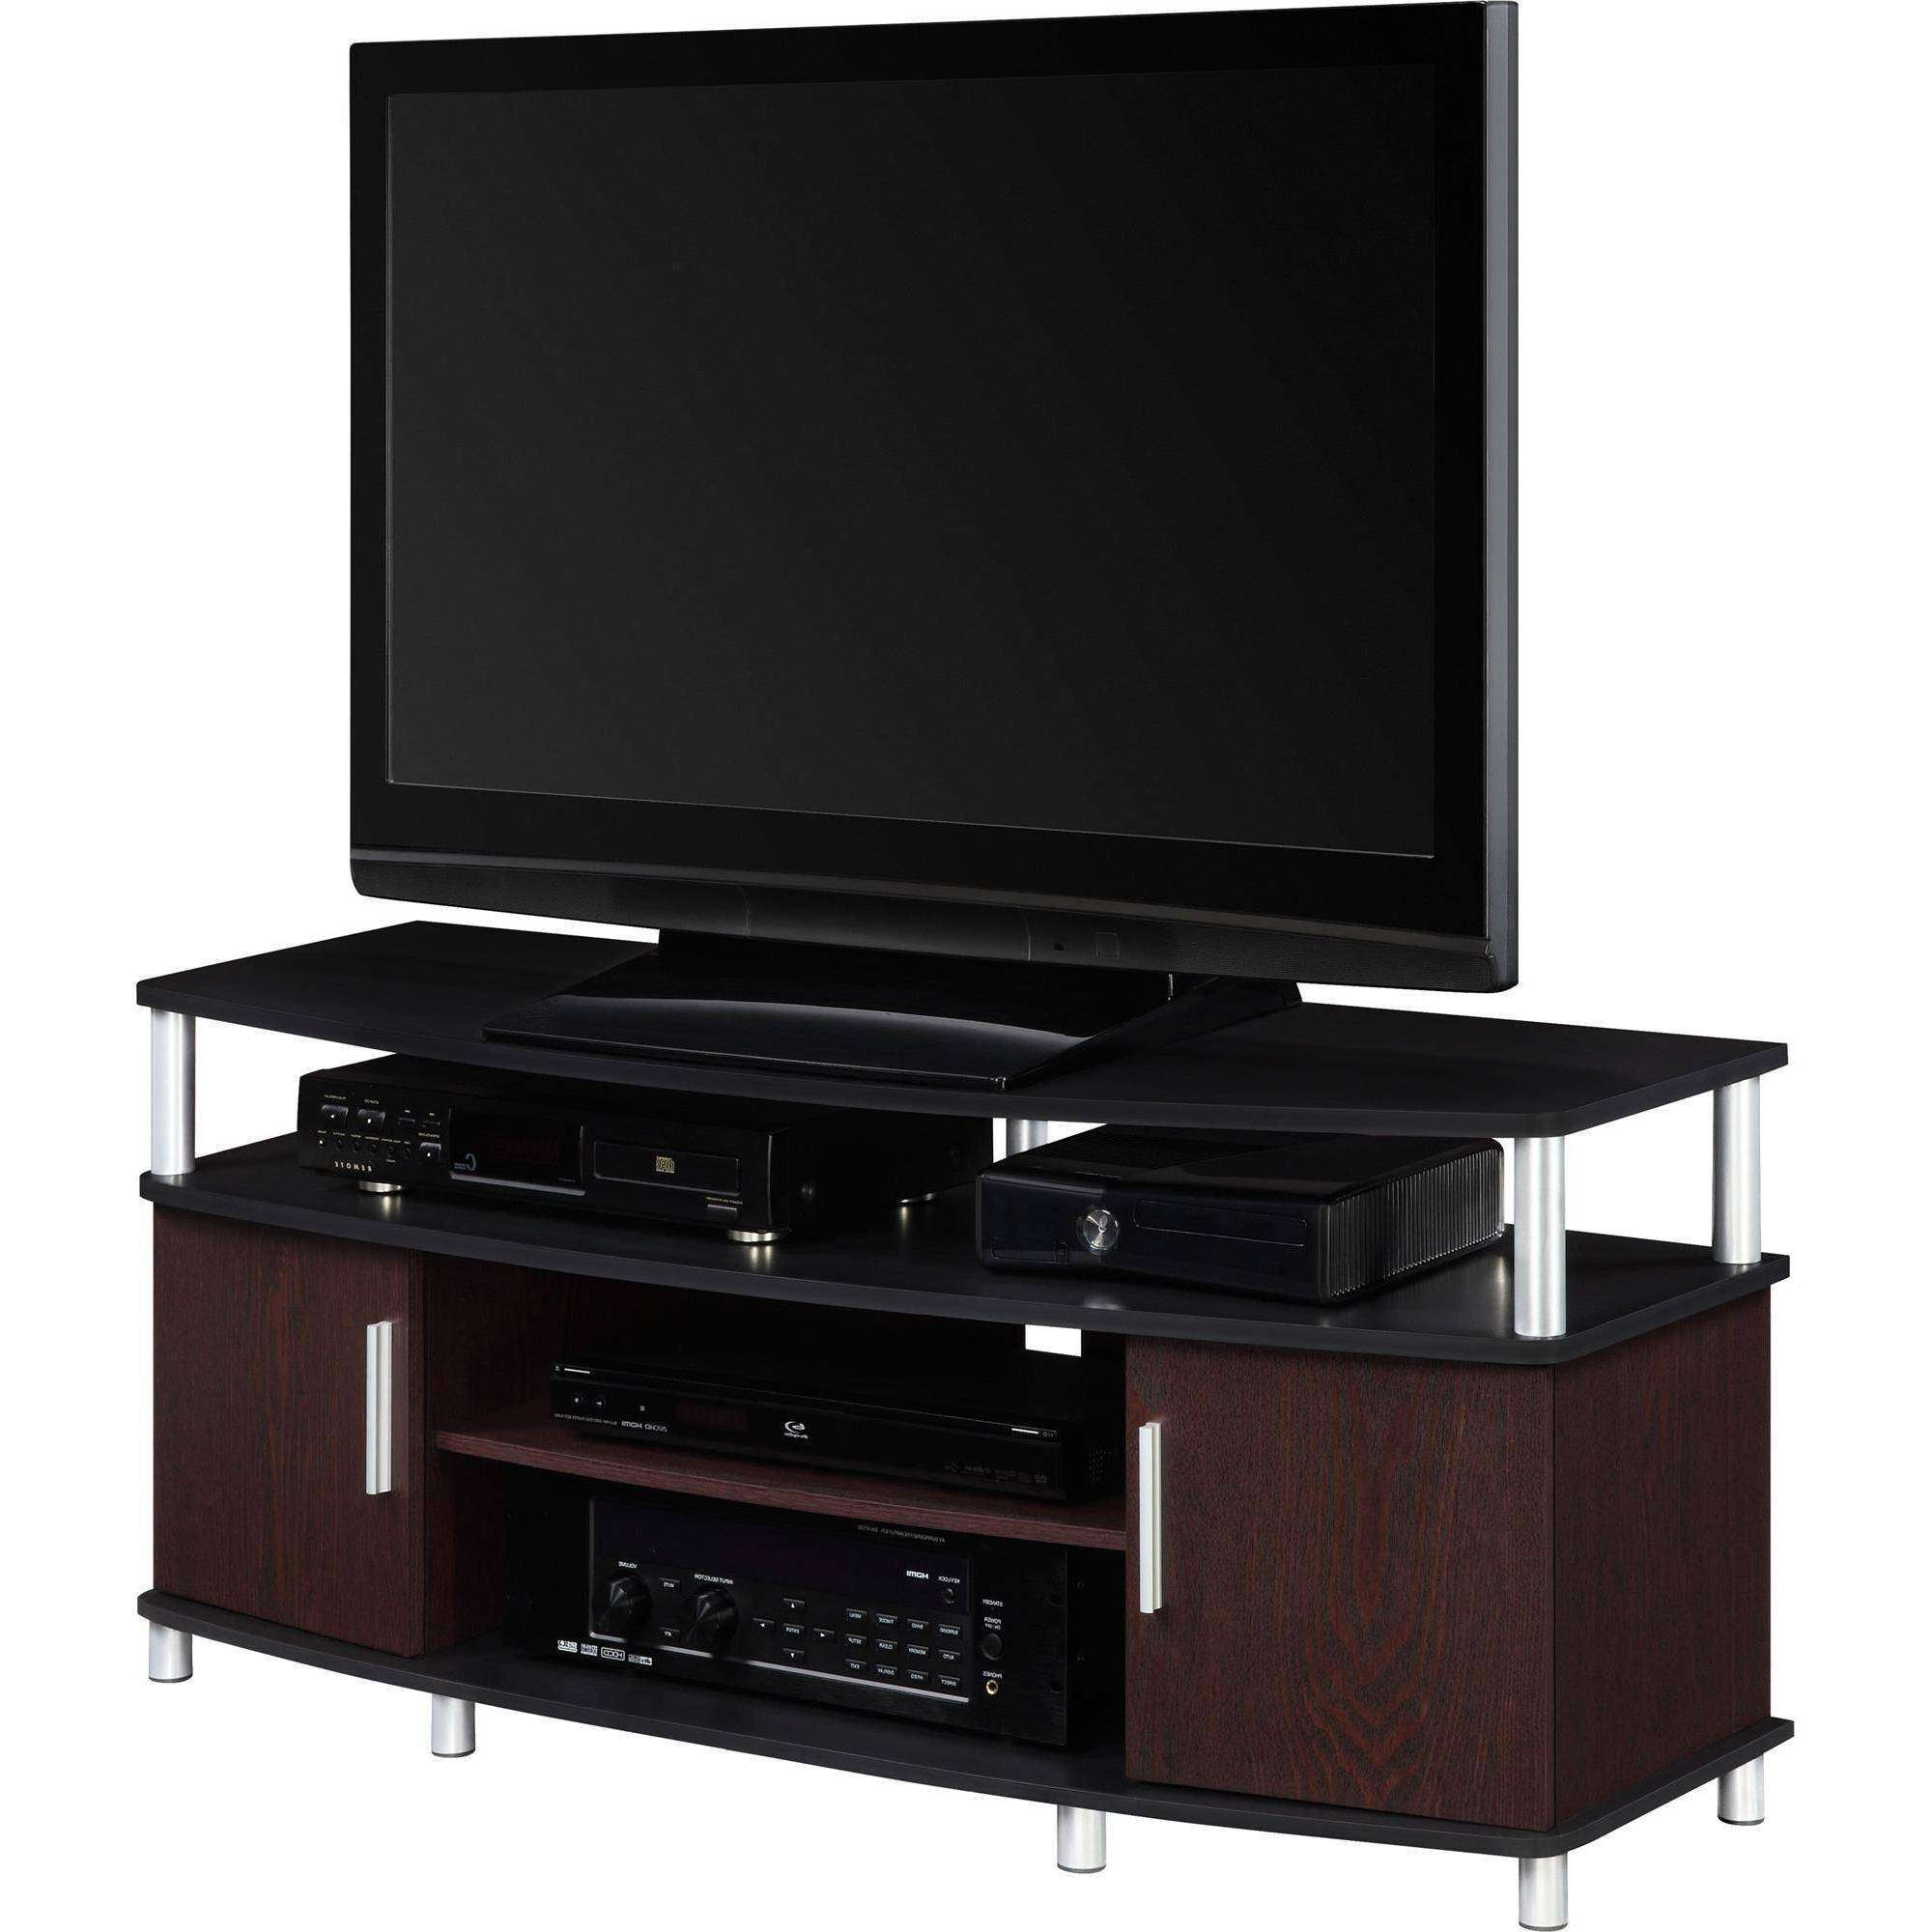 Great Corner Tv Stands For 50 Inch Tv 61 In Interior Decor Home Pertaining To Corner Tv Stands For 50 Inch Tv (View 15 of 20)